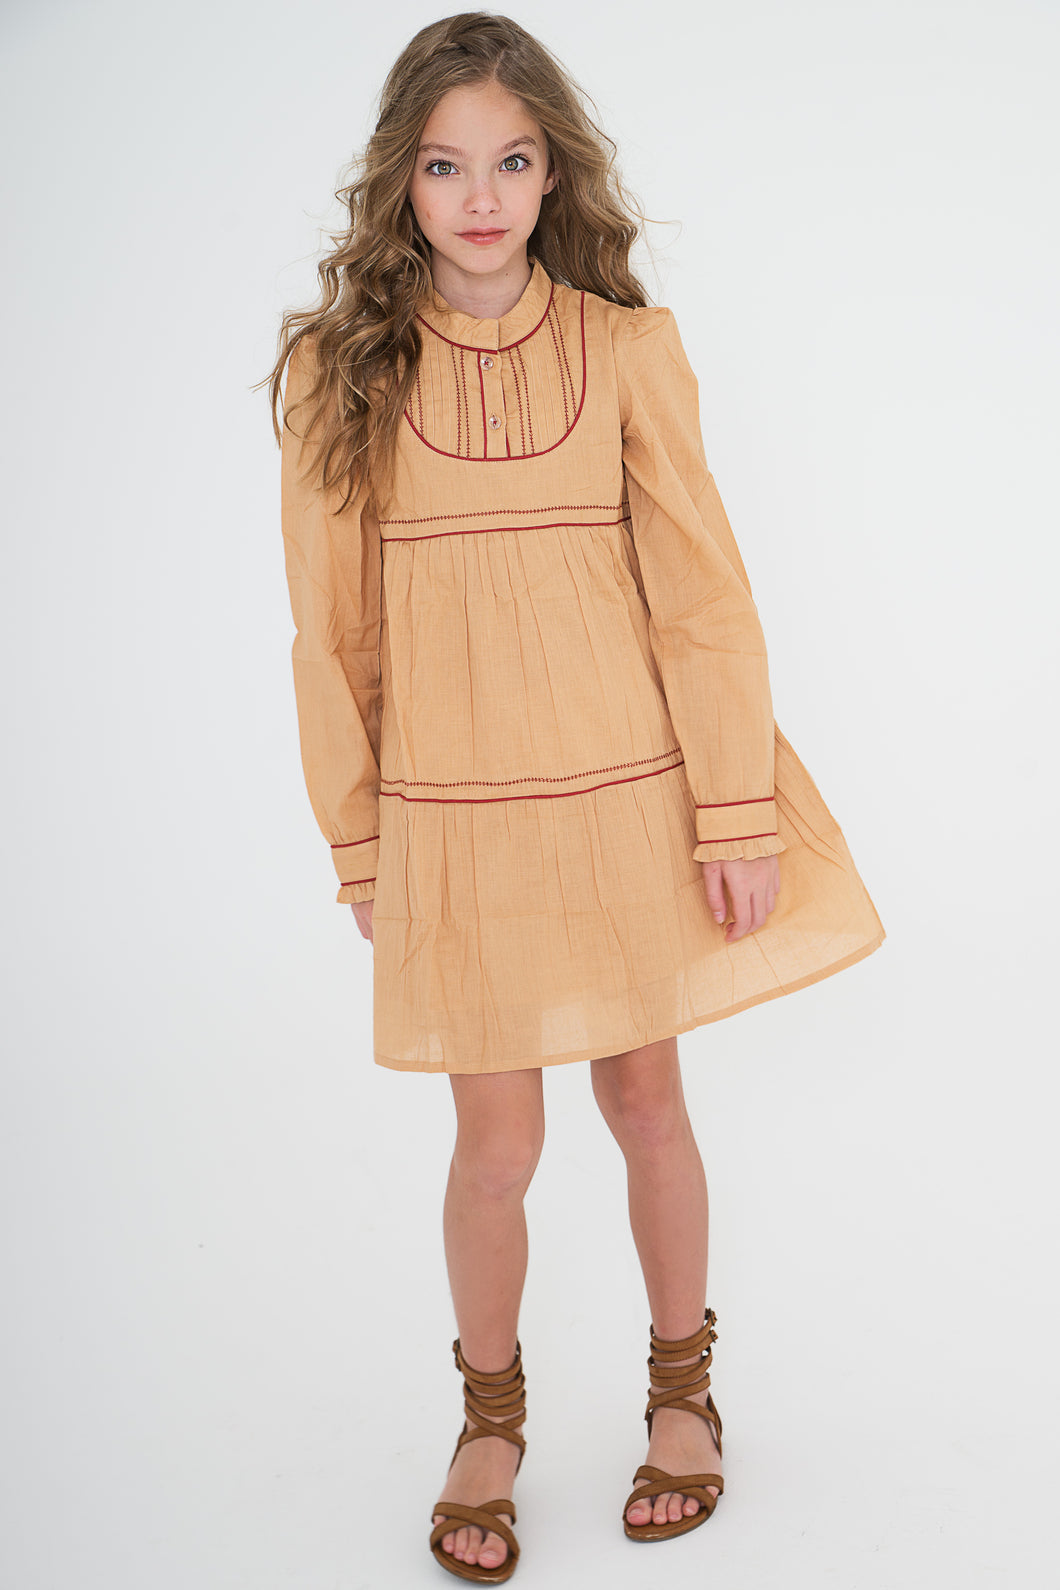 Tan dress With Red Piping - Kids Wholesale Boutique Clothing, Dress - Girls Dresses, Yo Baby Wholesale - Yo Baby